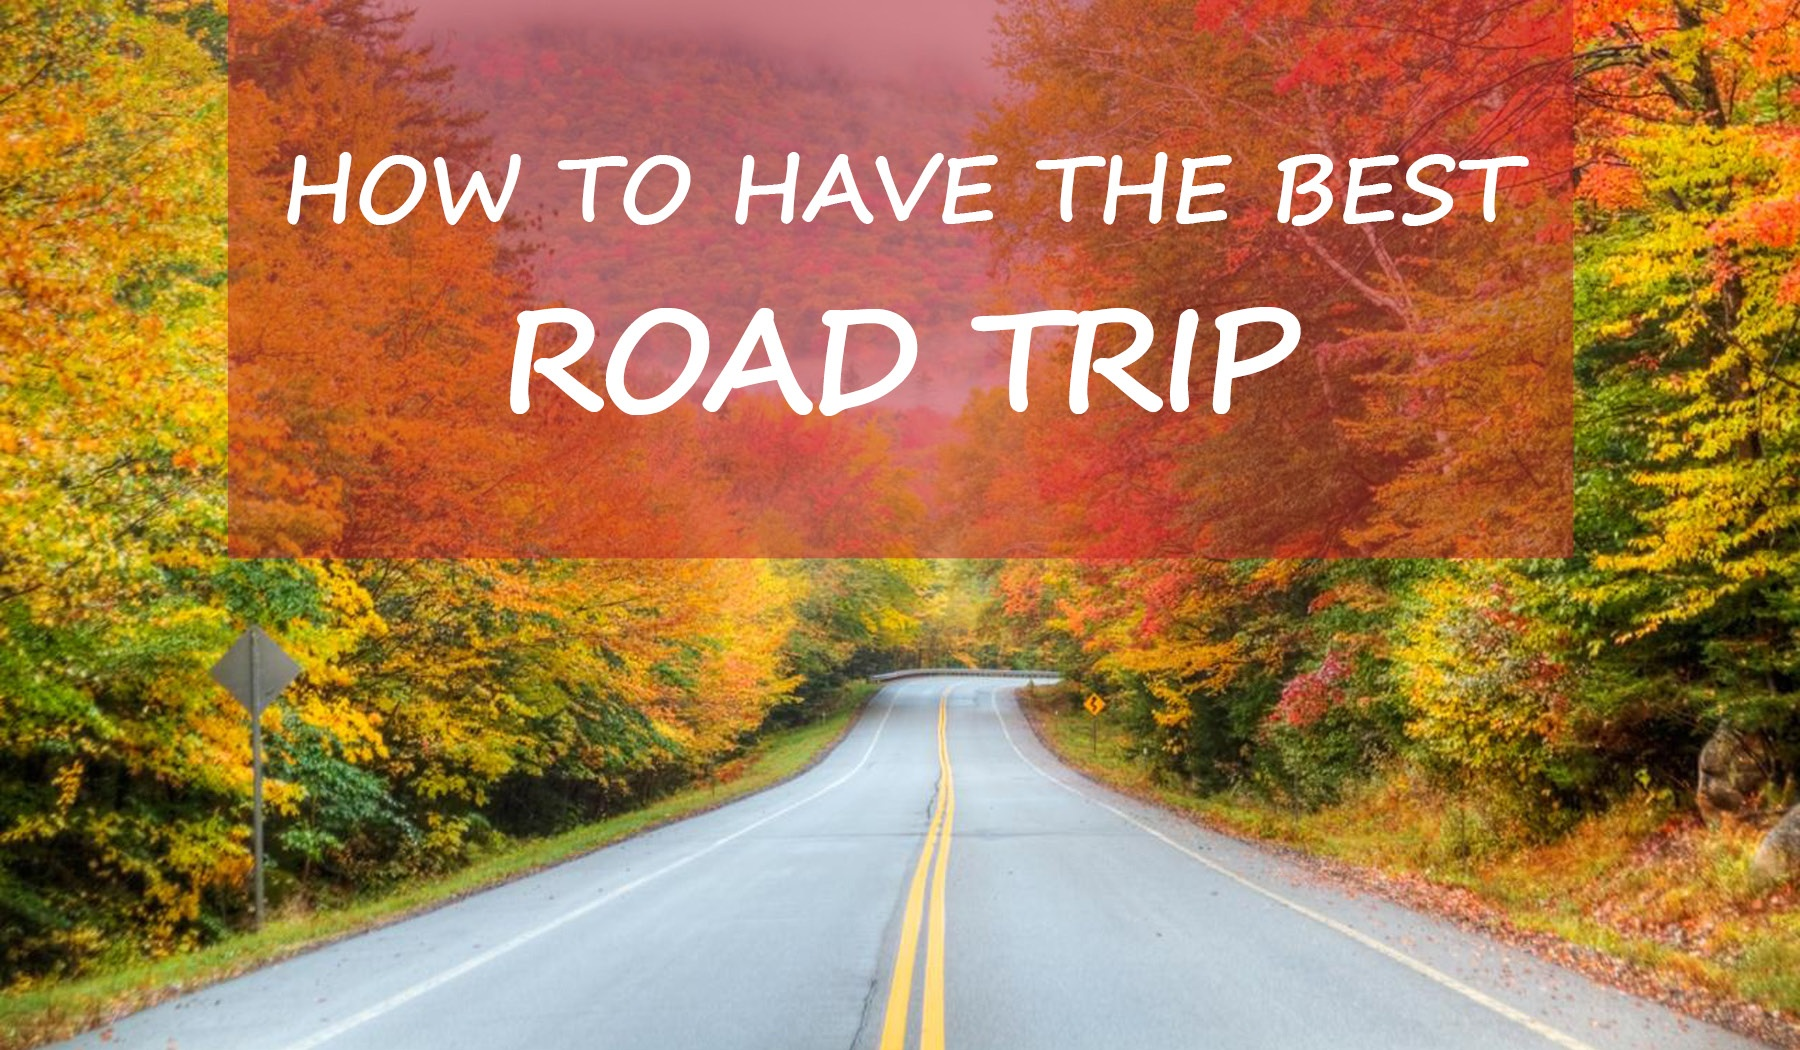 How to Have the Best Road Trip.jpg